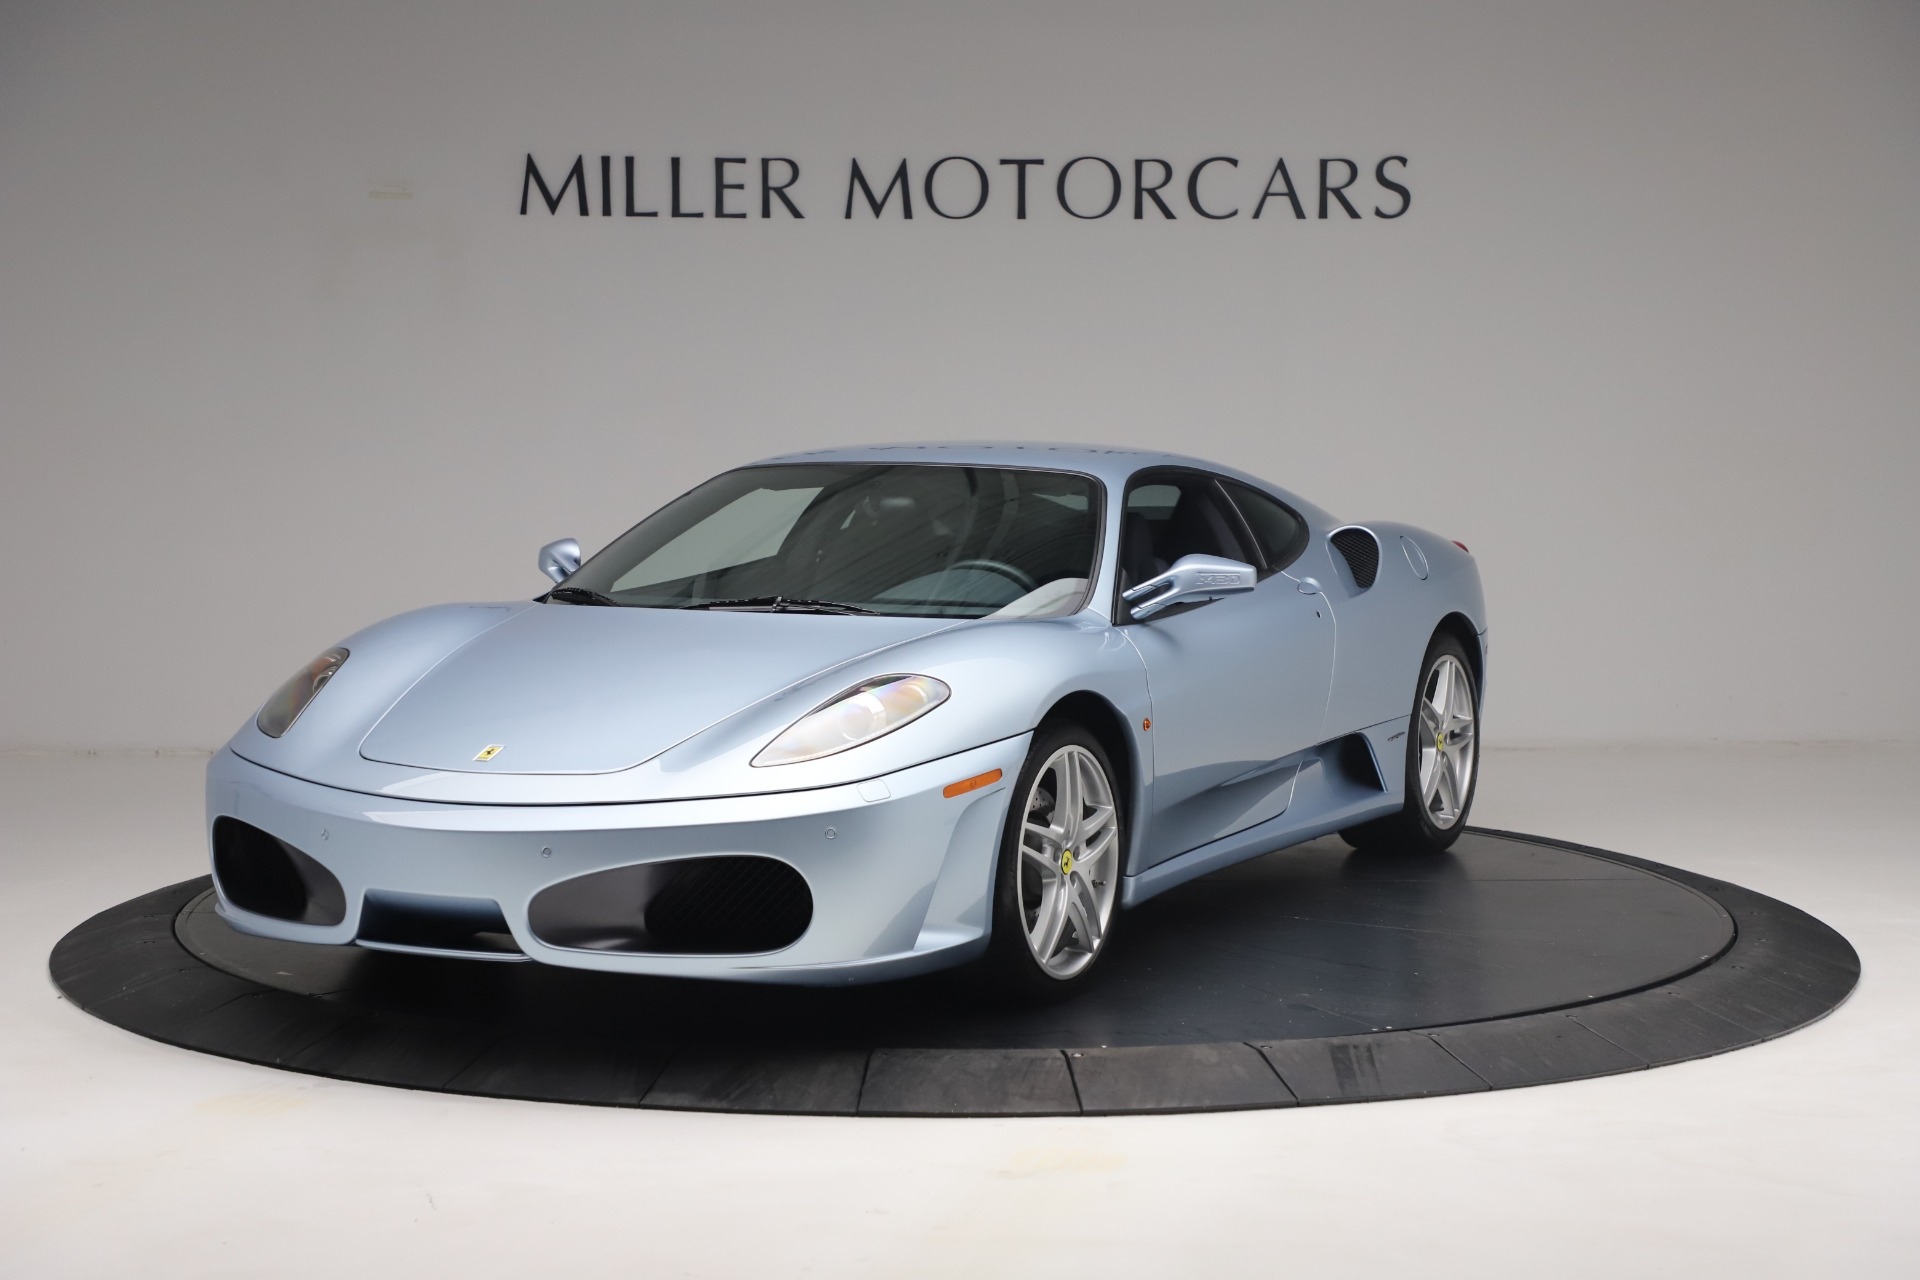 Used 2007 Ferrari F430 for sale $149,900 at Bentley Greenwich in Greenwich CT 06830 1